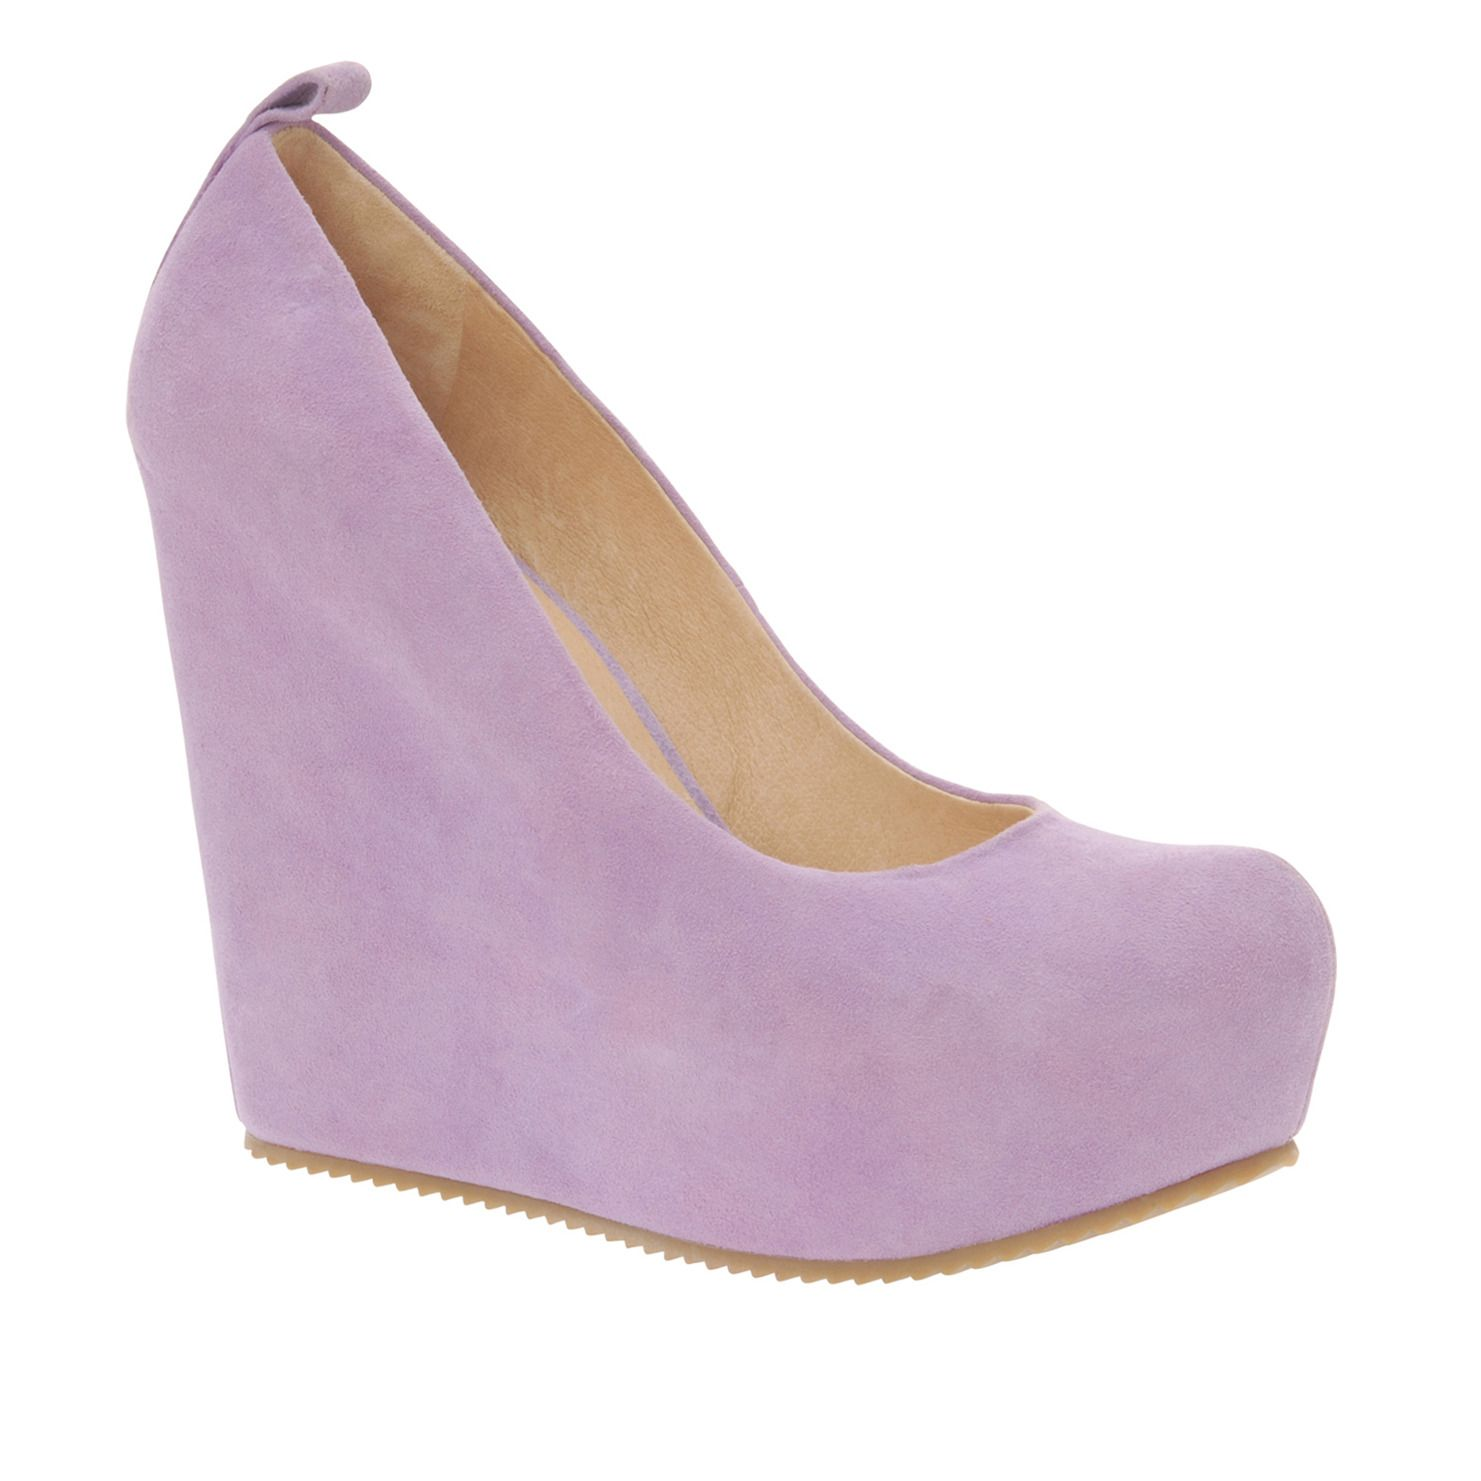 461c5261adb CALCAGNI - women s wedges shoes for sale at ALDO Shoes. NEED THESE ...